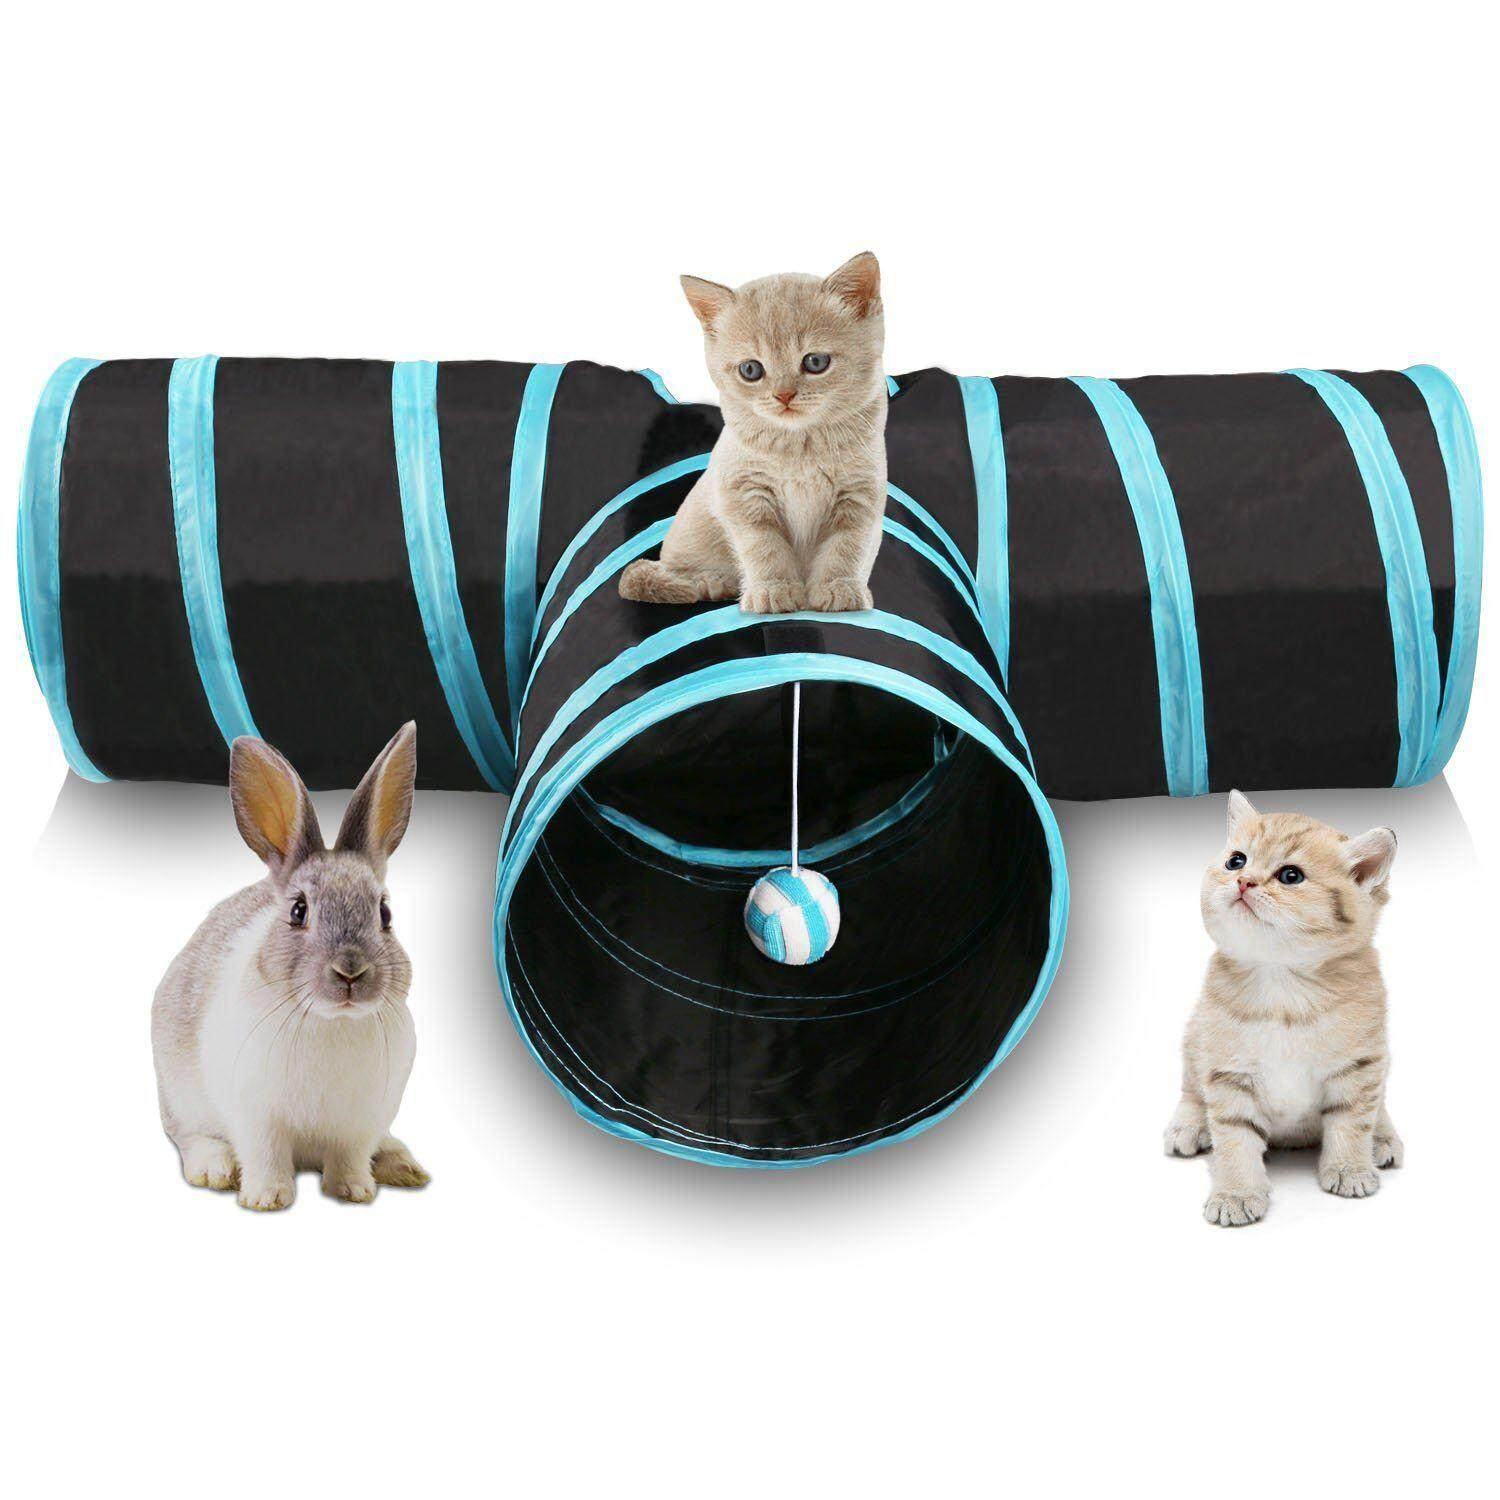 Cat Tunnel 3 Way Collapsible Pet Cat Play Tunnel With Ringing Ball, Spacious Tube Fun For Cat Puppy Kitten Blue + Black By Lovefreebuy.